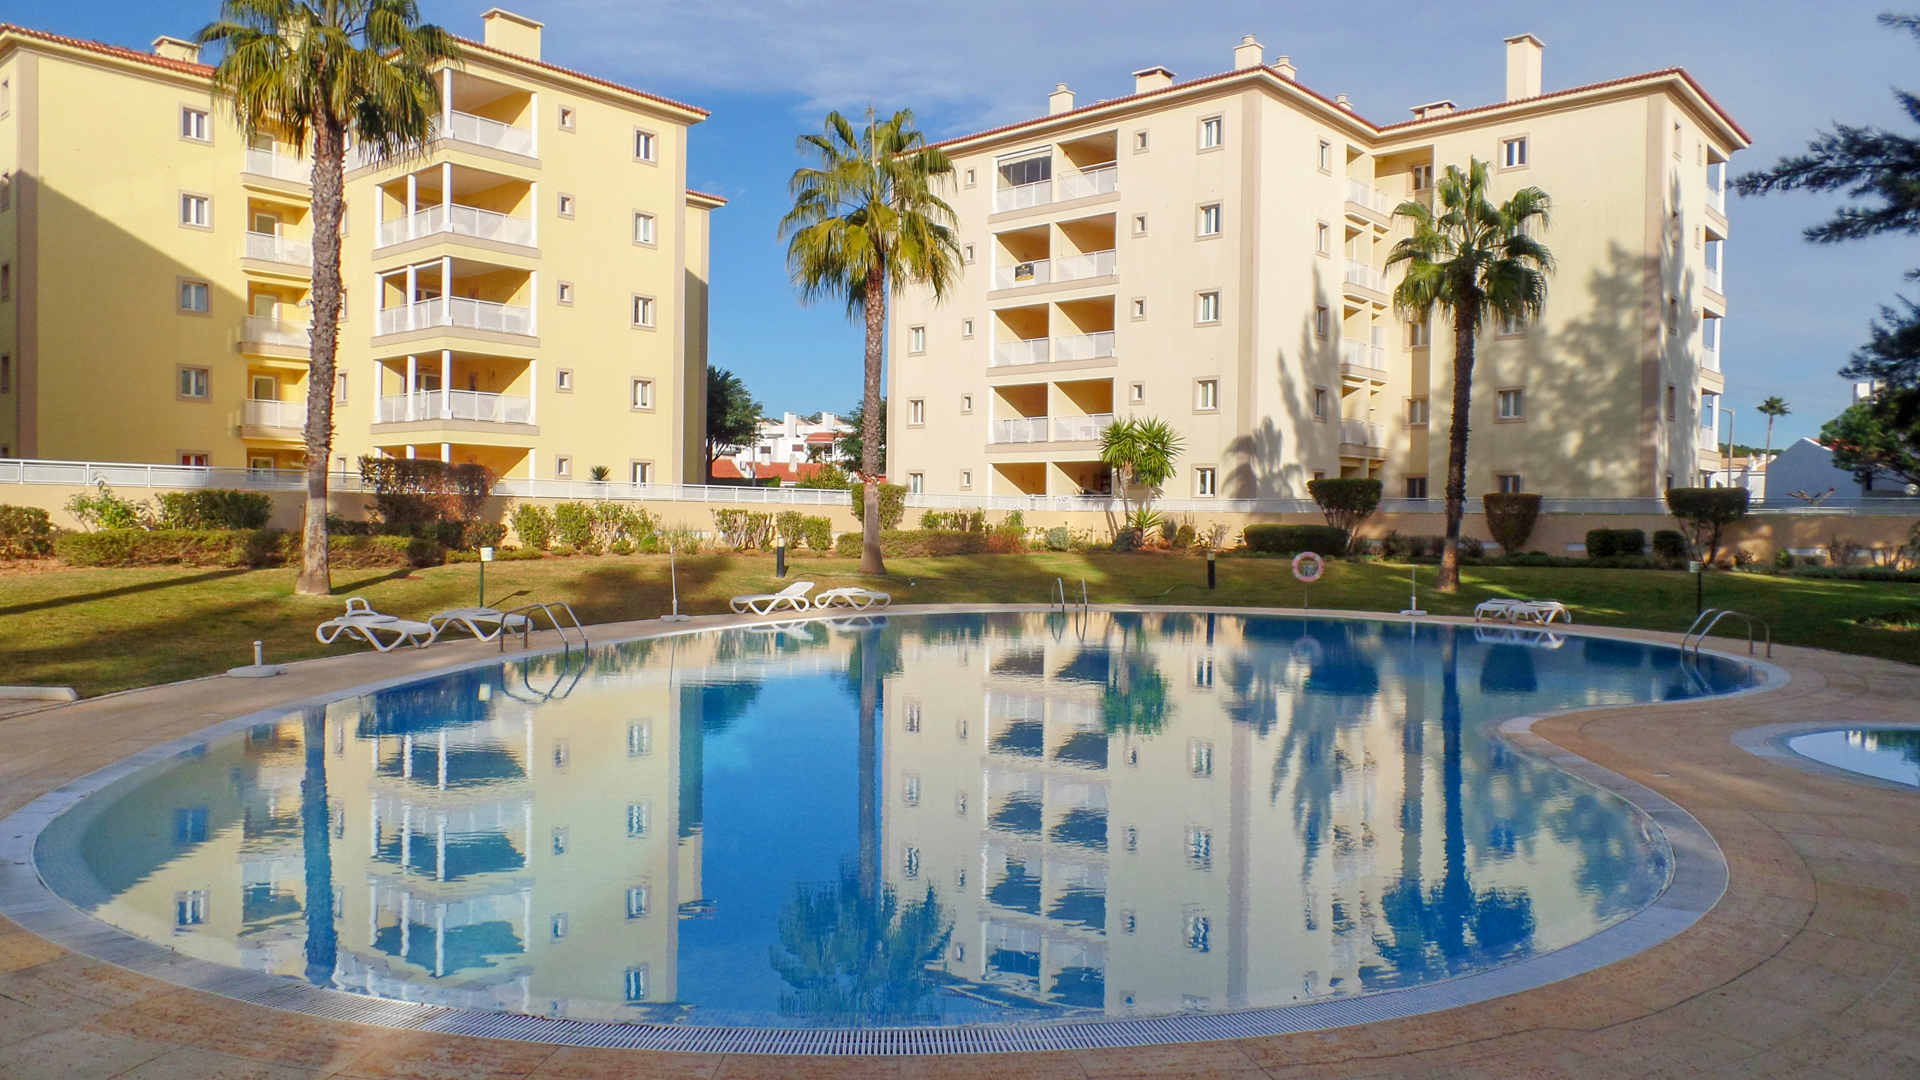 2 bed apartment with pool in vilamoura, algarve